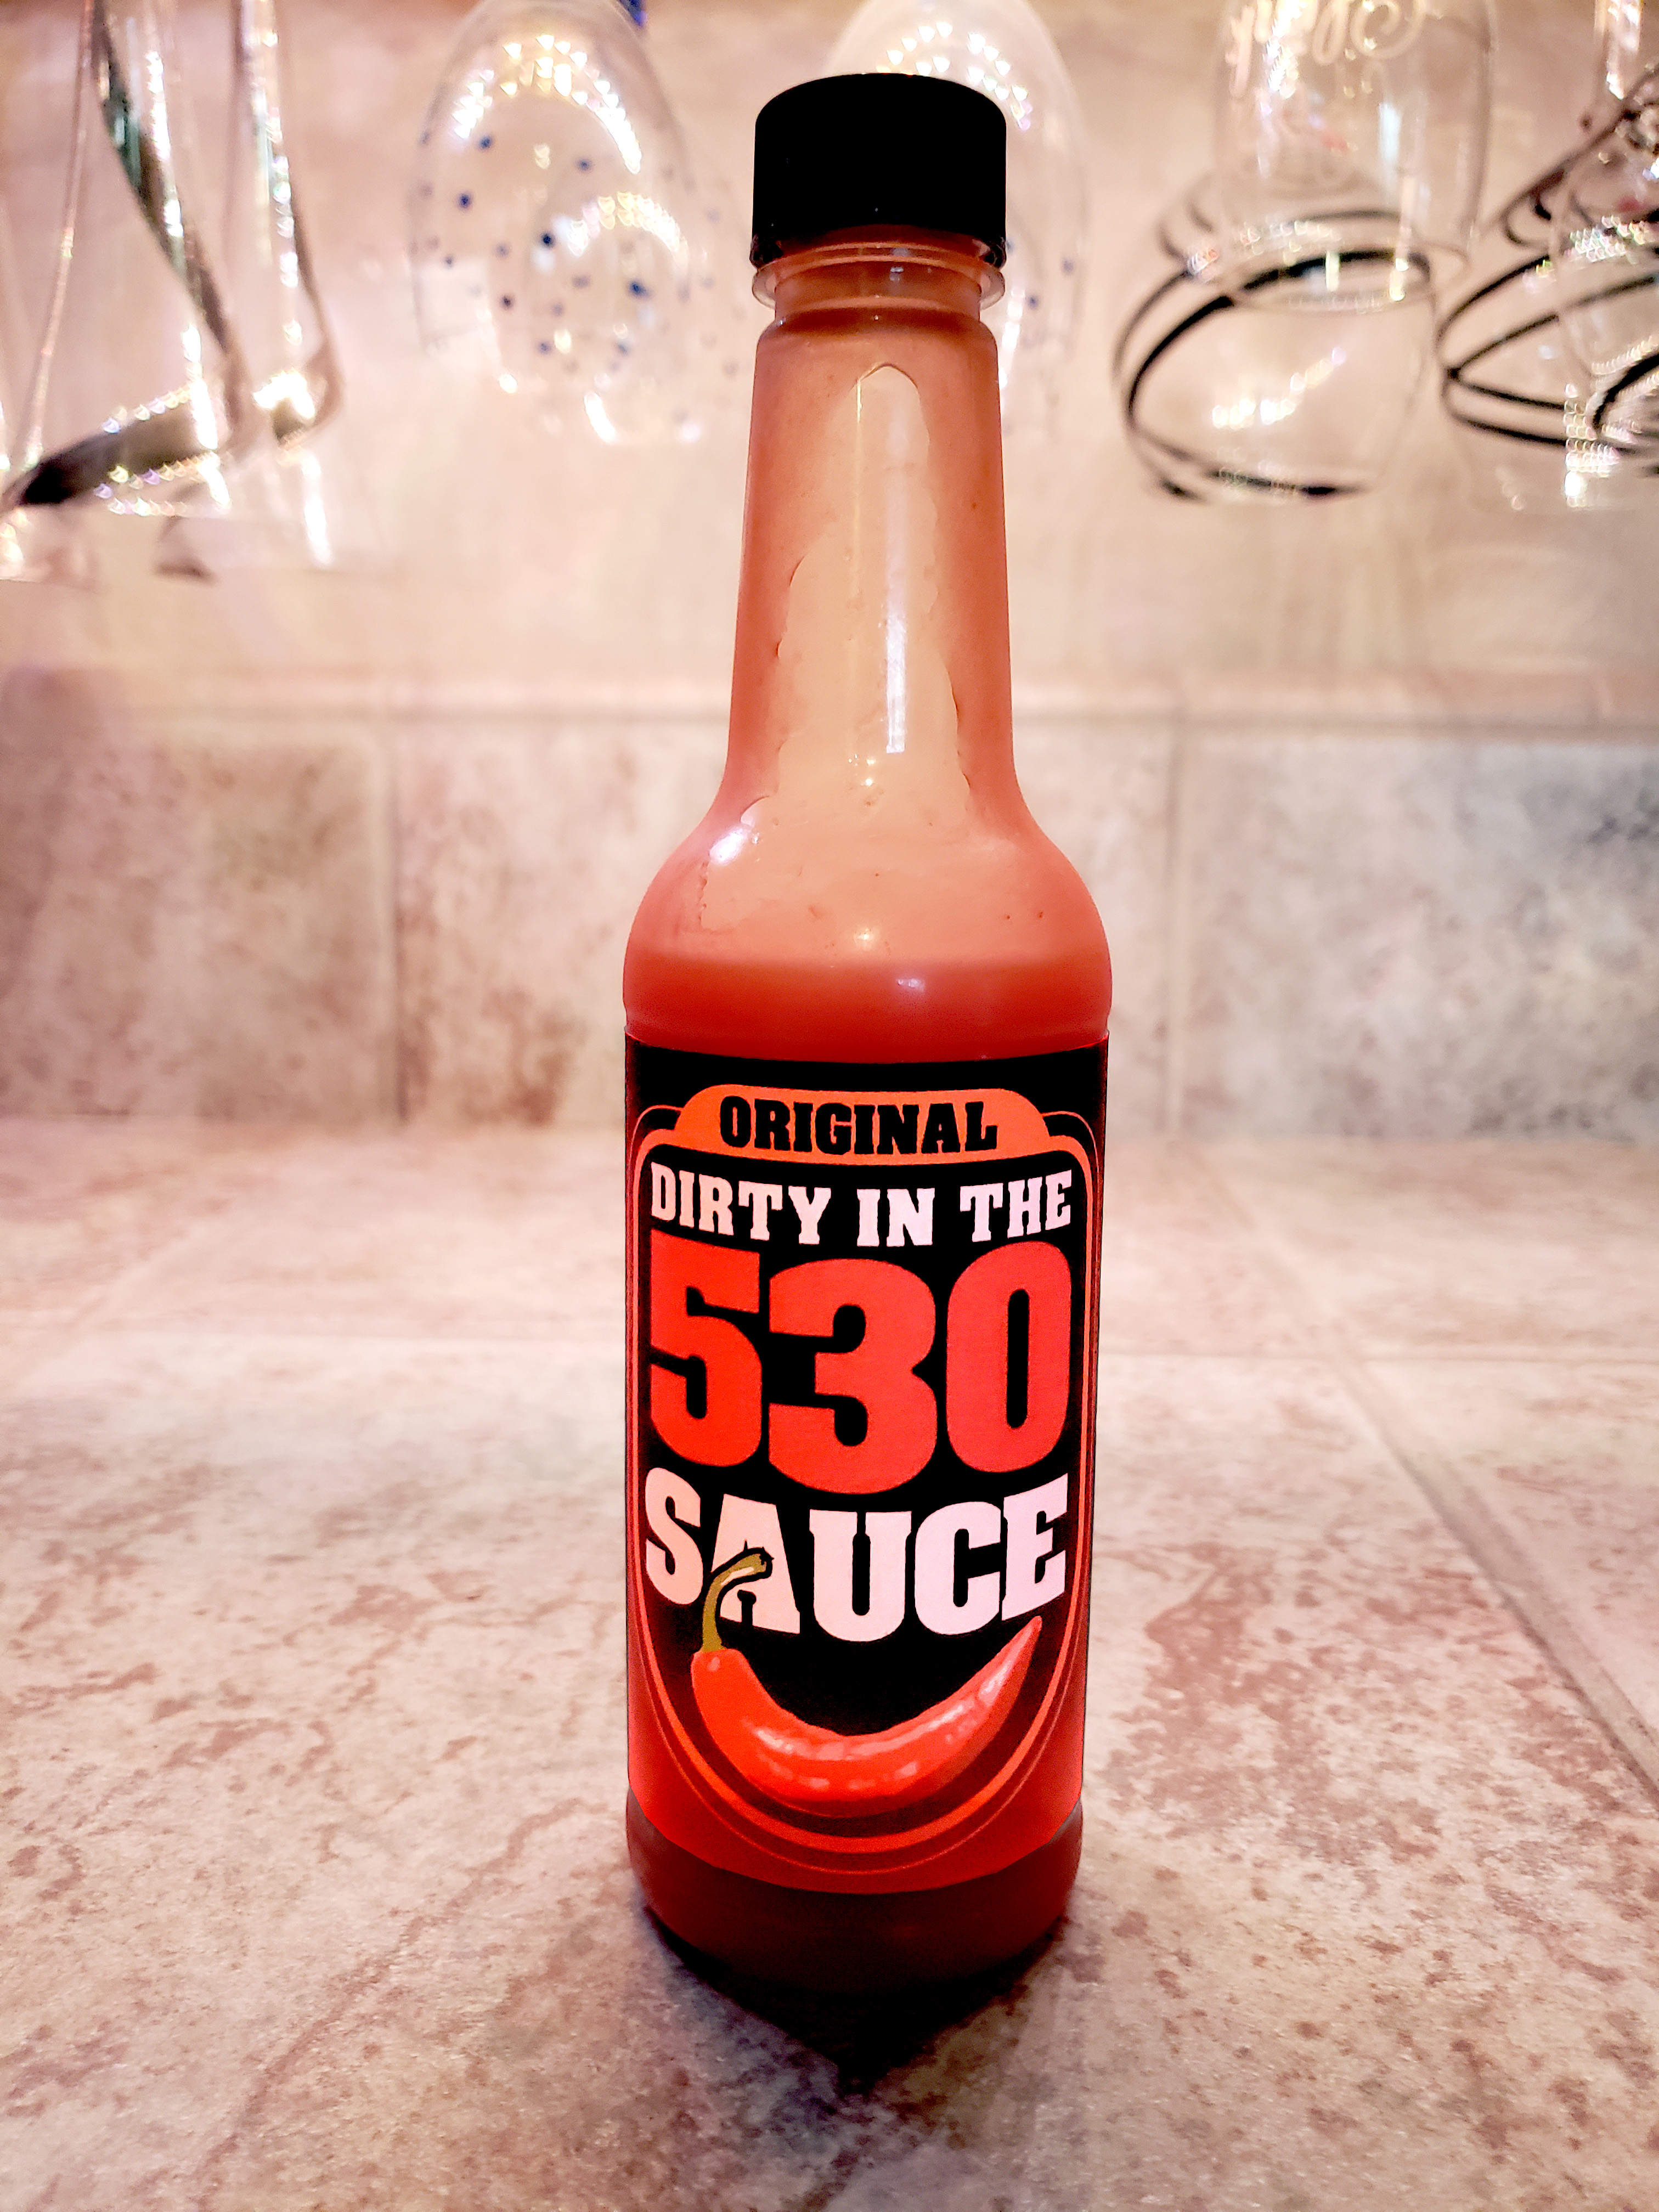 Dirty in the 530 – Labels